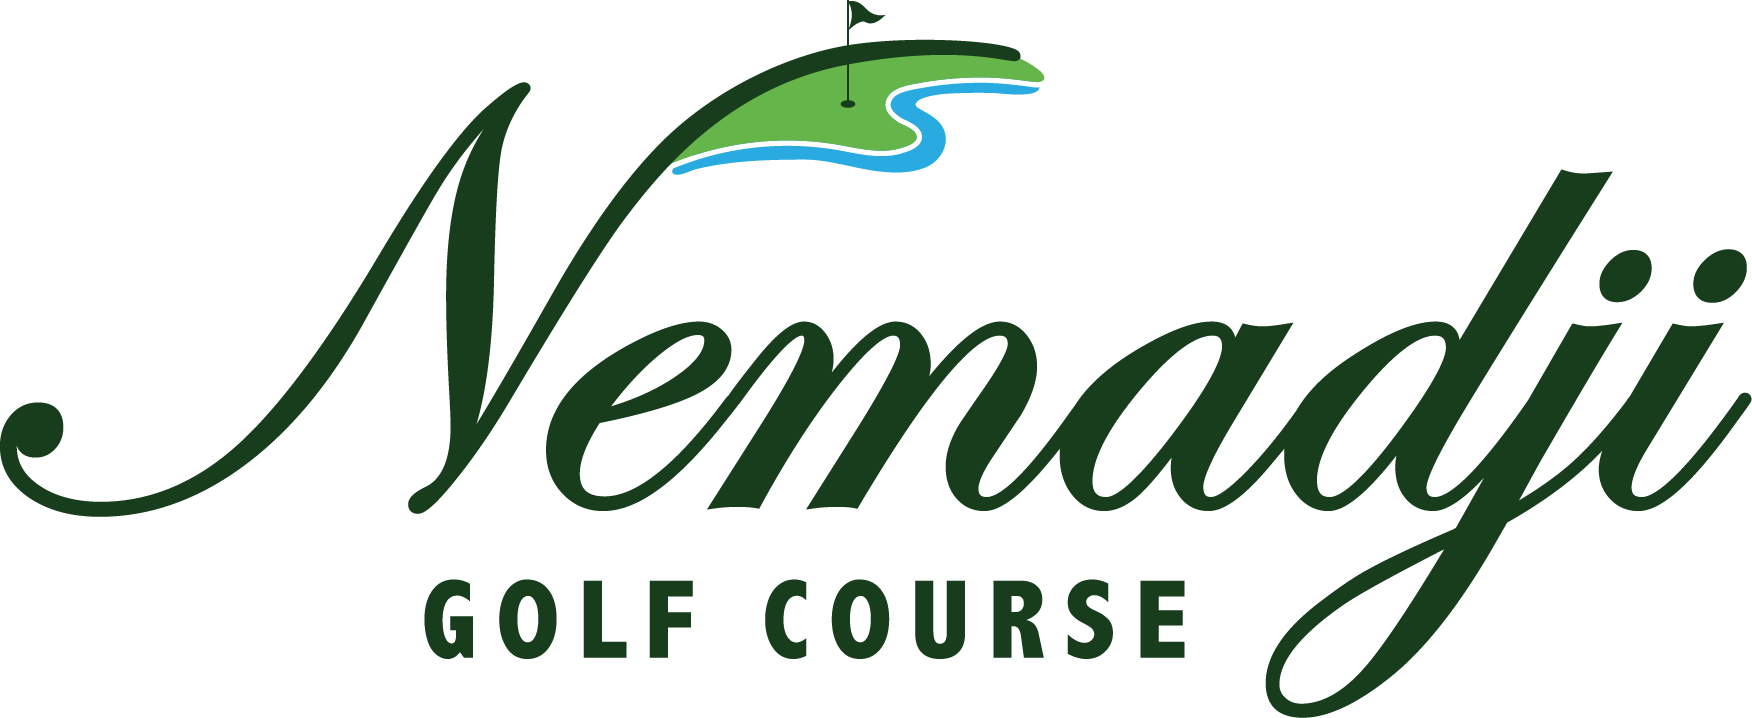 Nemadji Golf Course